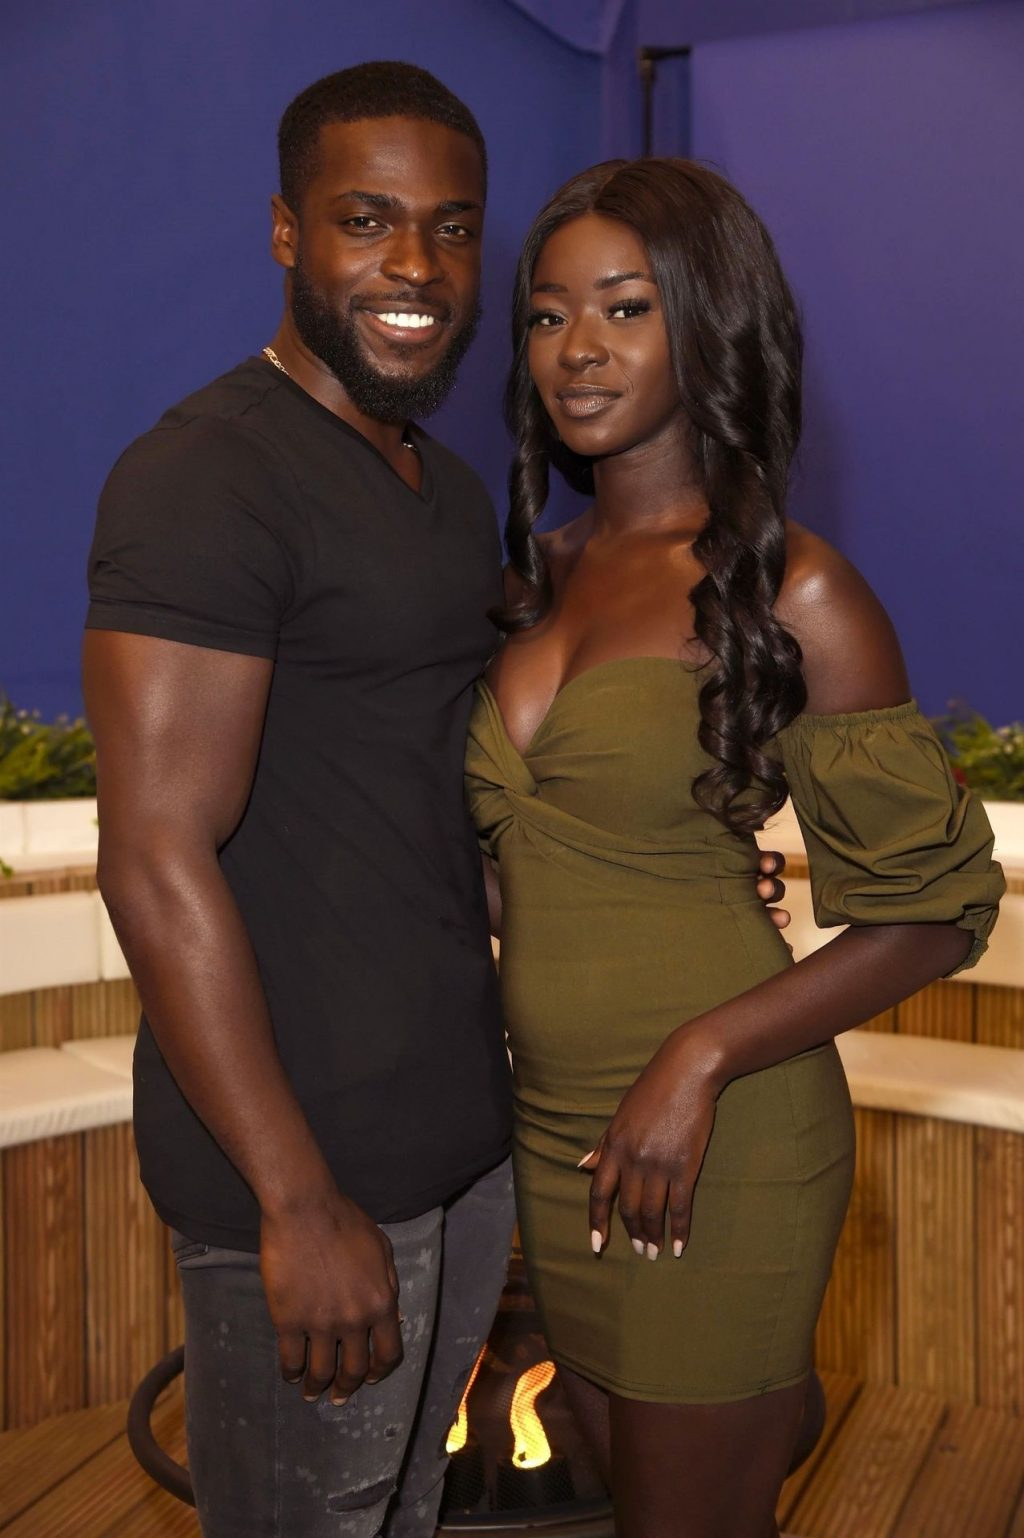 Mike Boateng and Priscilla Anyabu Pictured in Manchester (21 Photos)